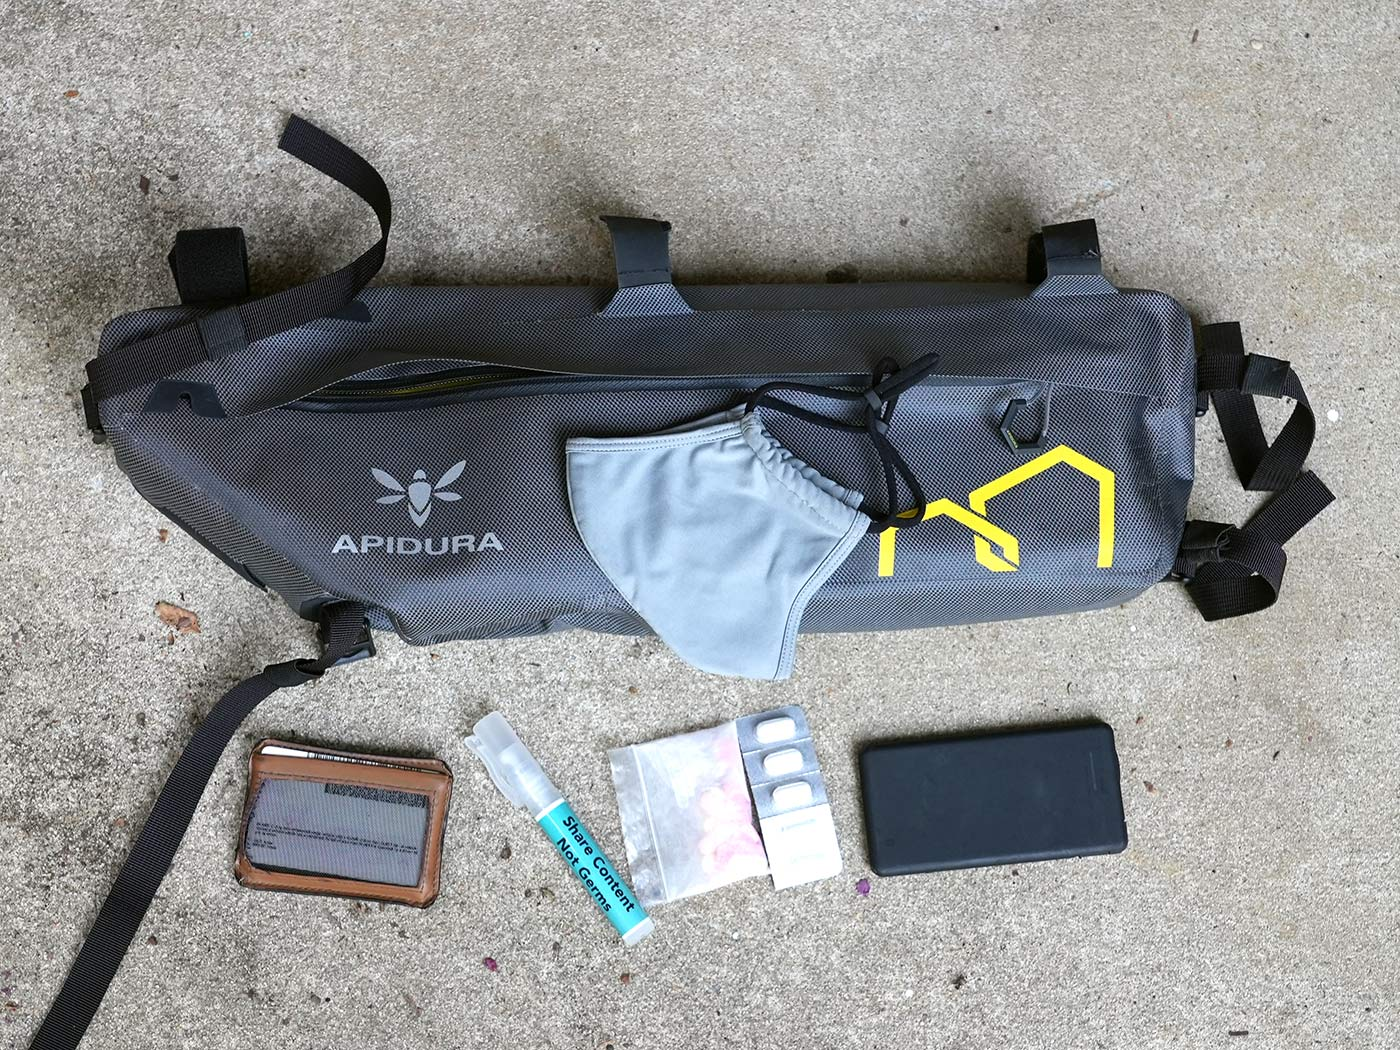 contents laid out showing what all will fit inside the apidura expedition frame pack